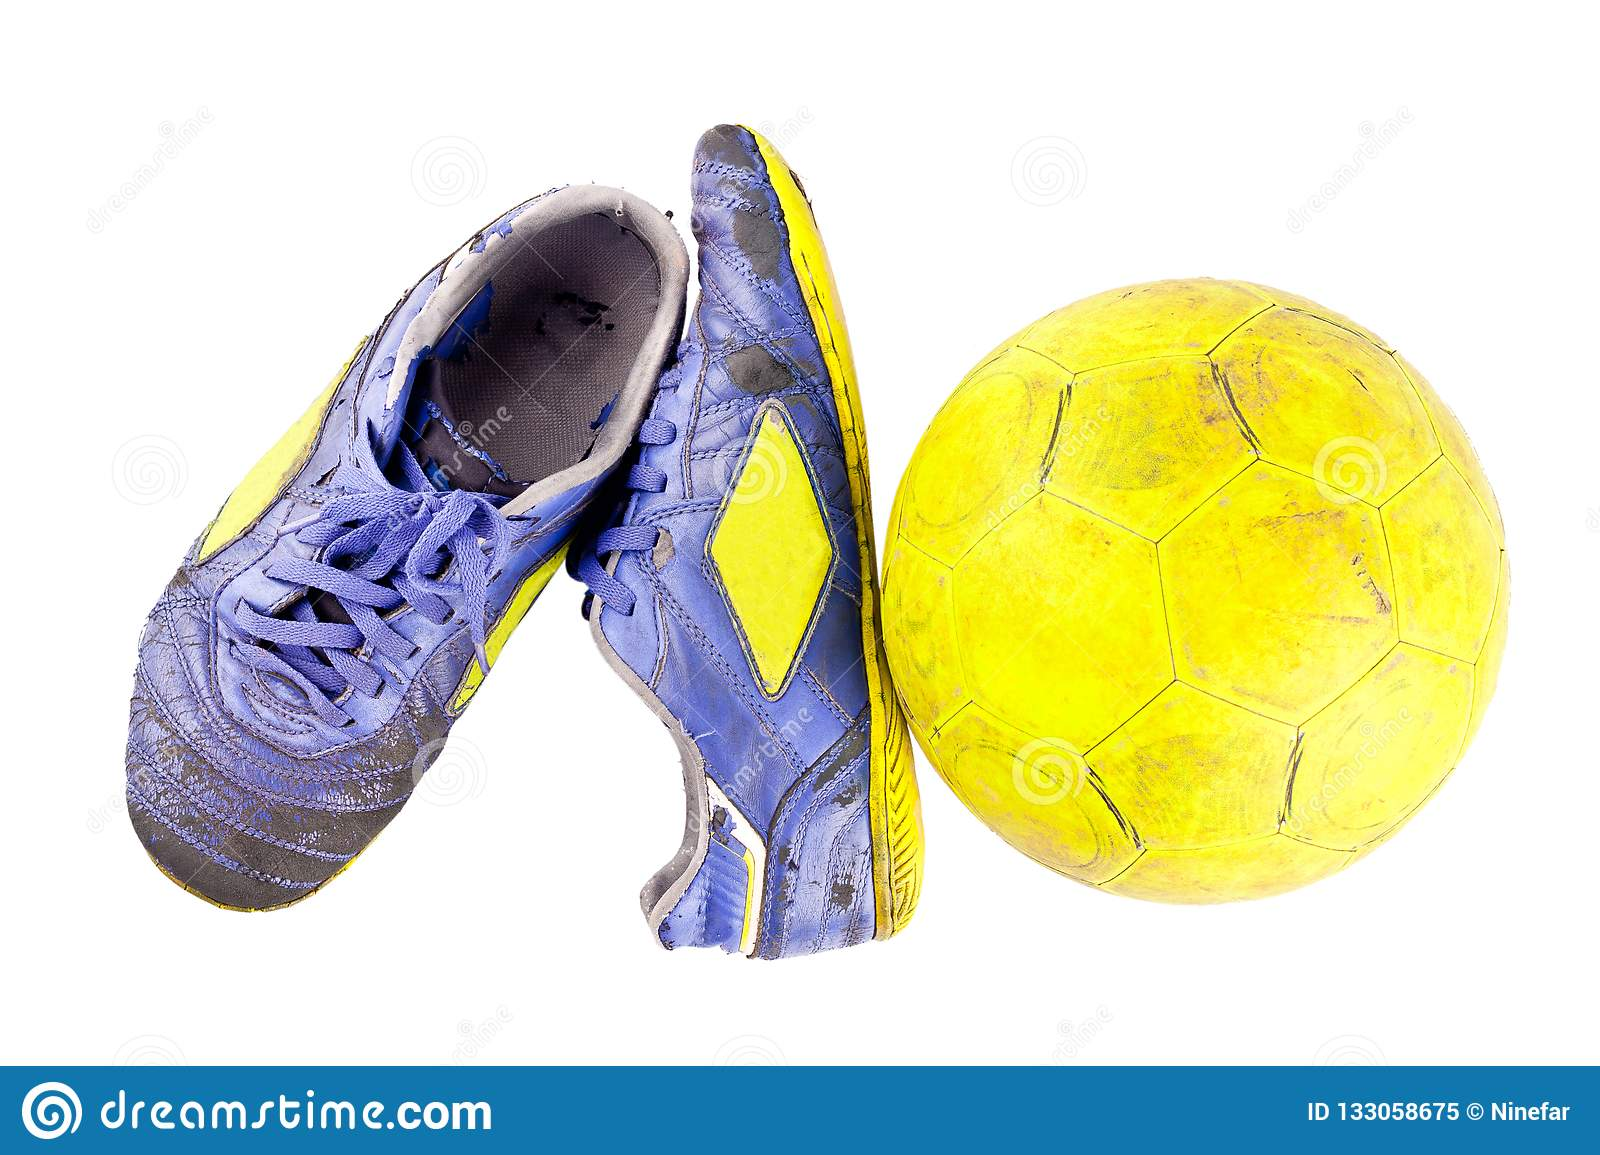 e166ad981f6 Old football shoes damaged and old dirty yellow futsal ball on white  background football object isolated